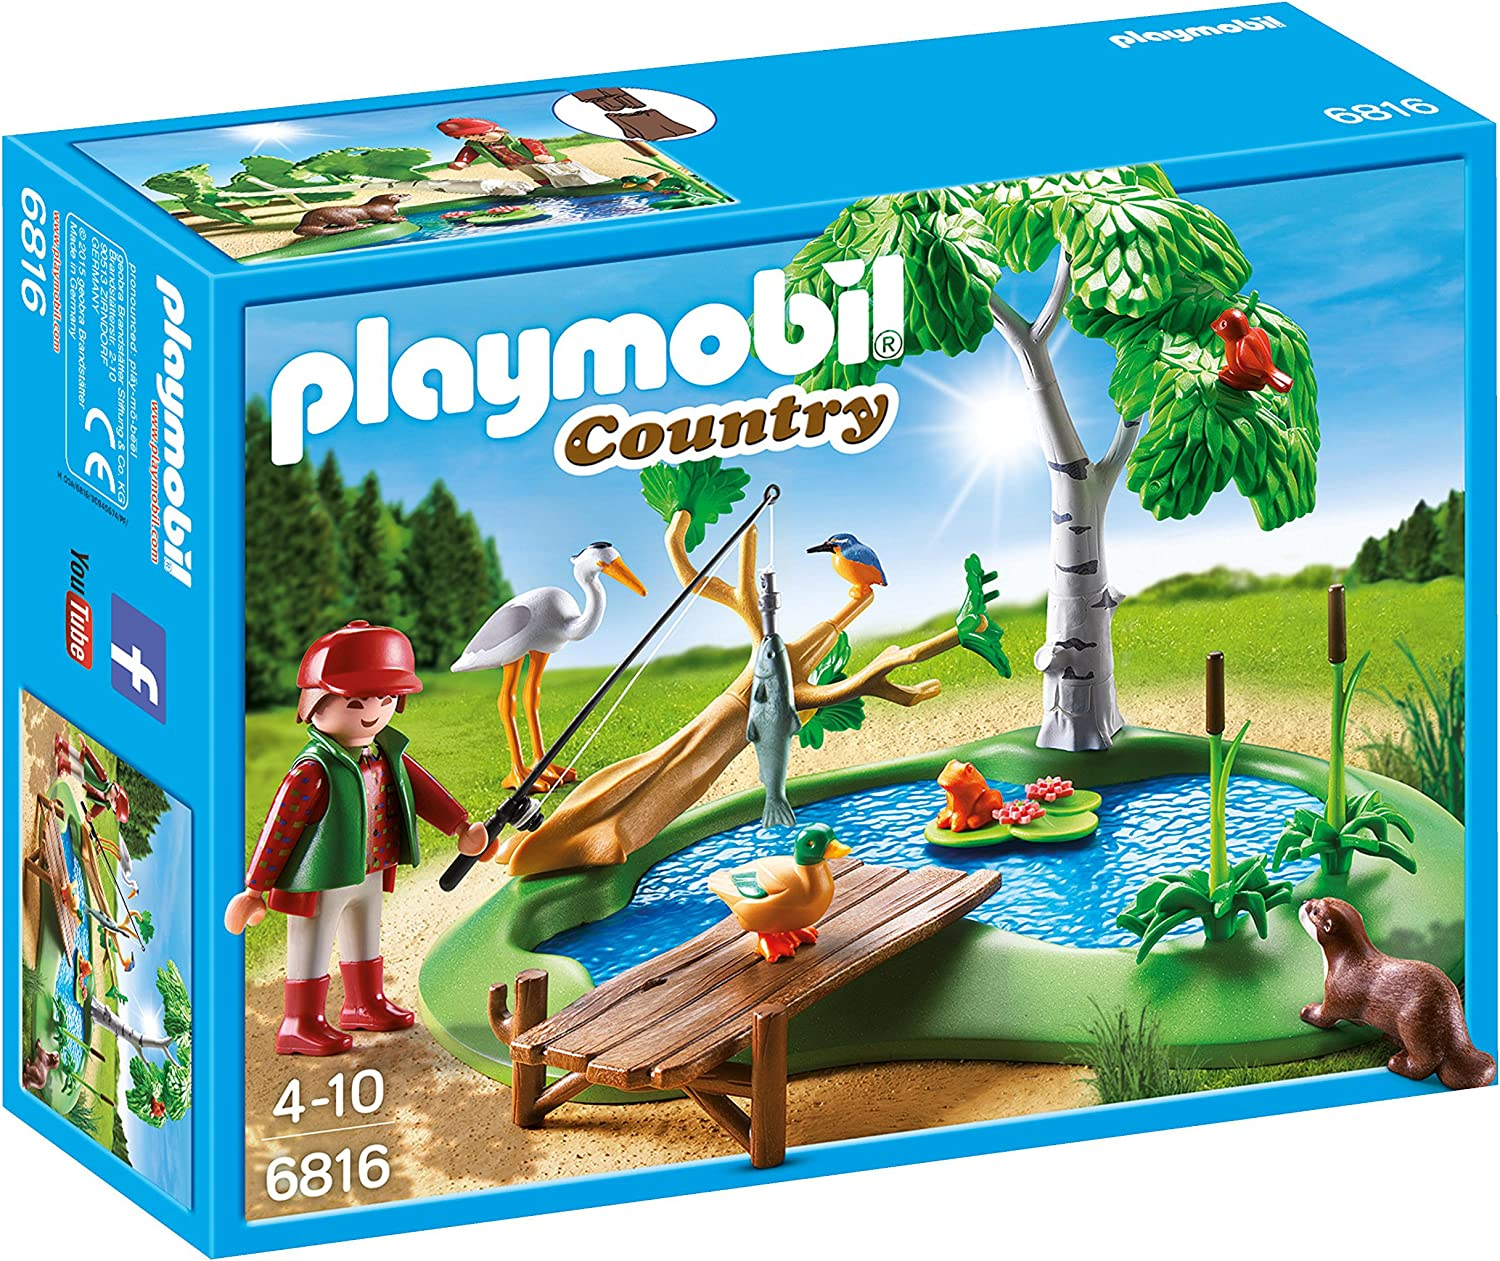 Playmobil Vida en el Bosque - Country Lago con Animales Playsets de Figuras de jugete, Color Multicolor (Playmobil 6816)